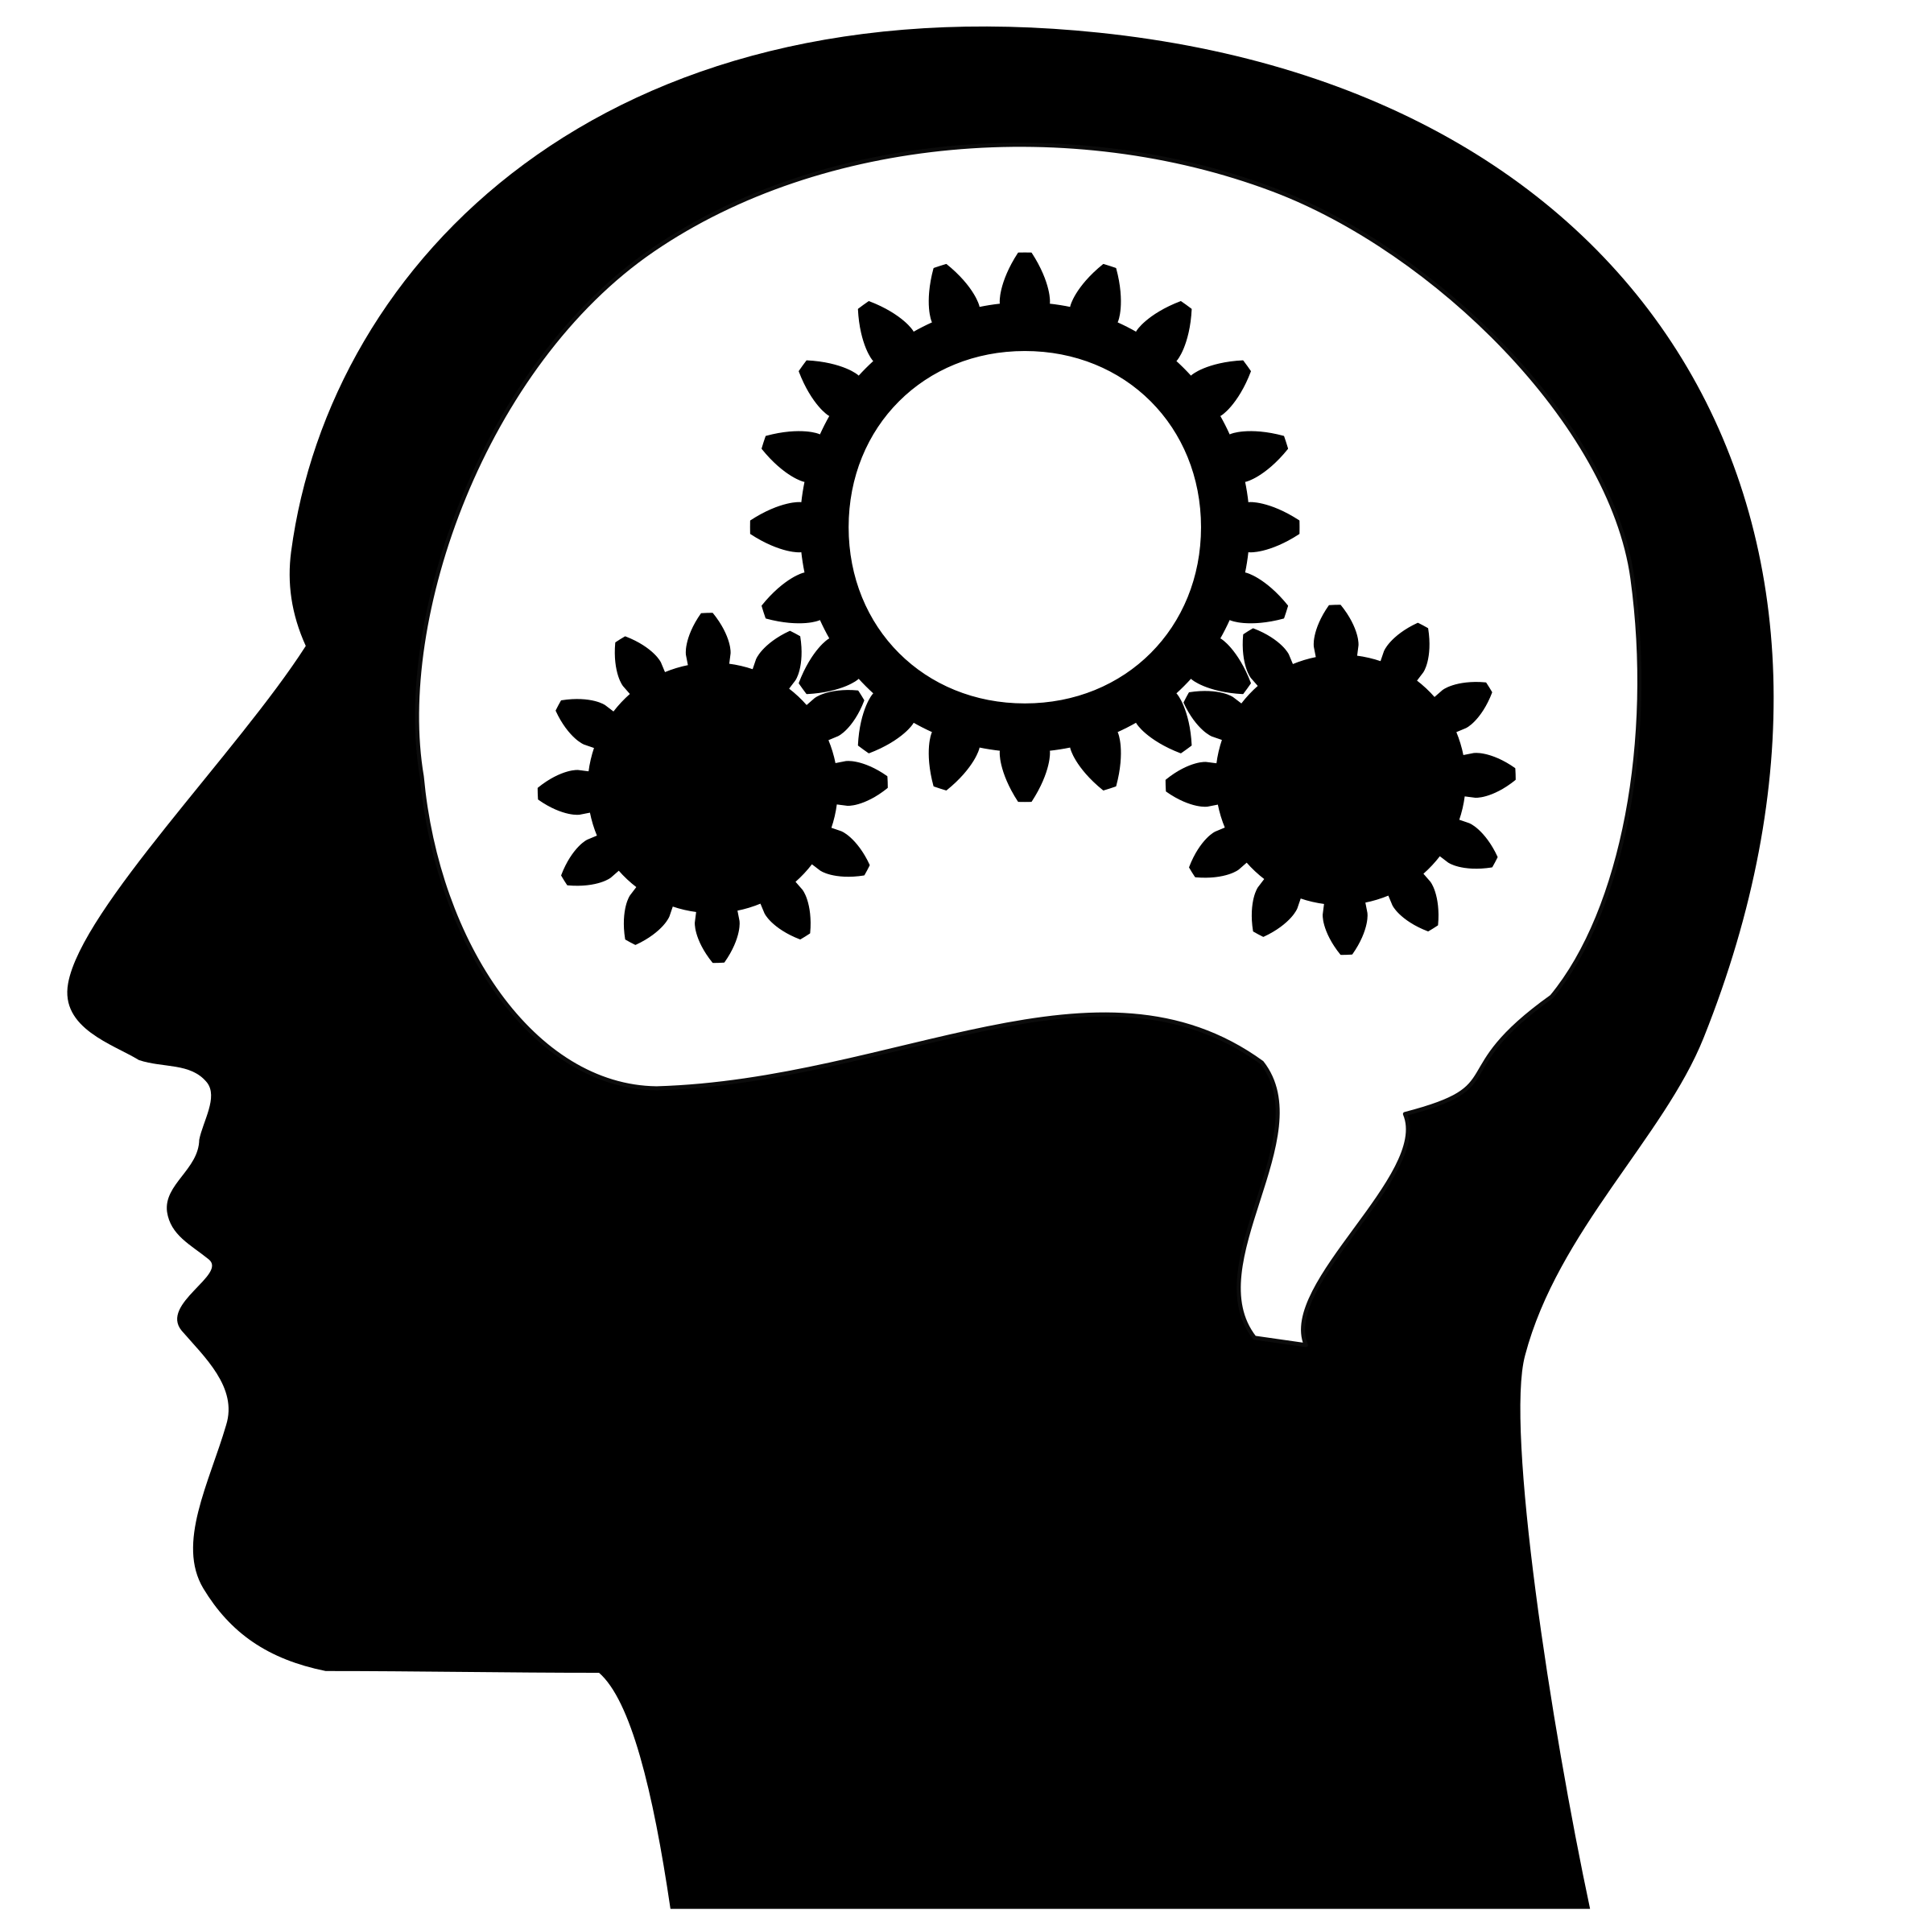 thinking-brain-machine-vector-clipart